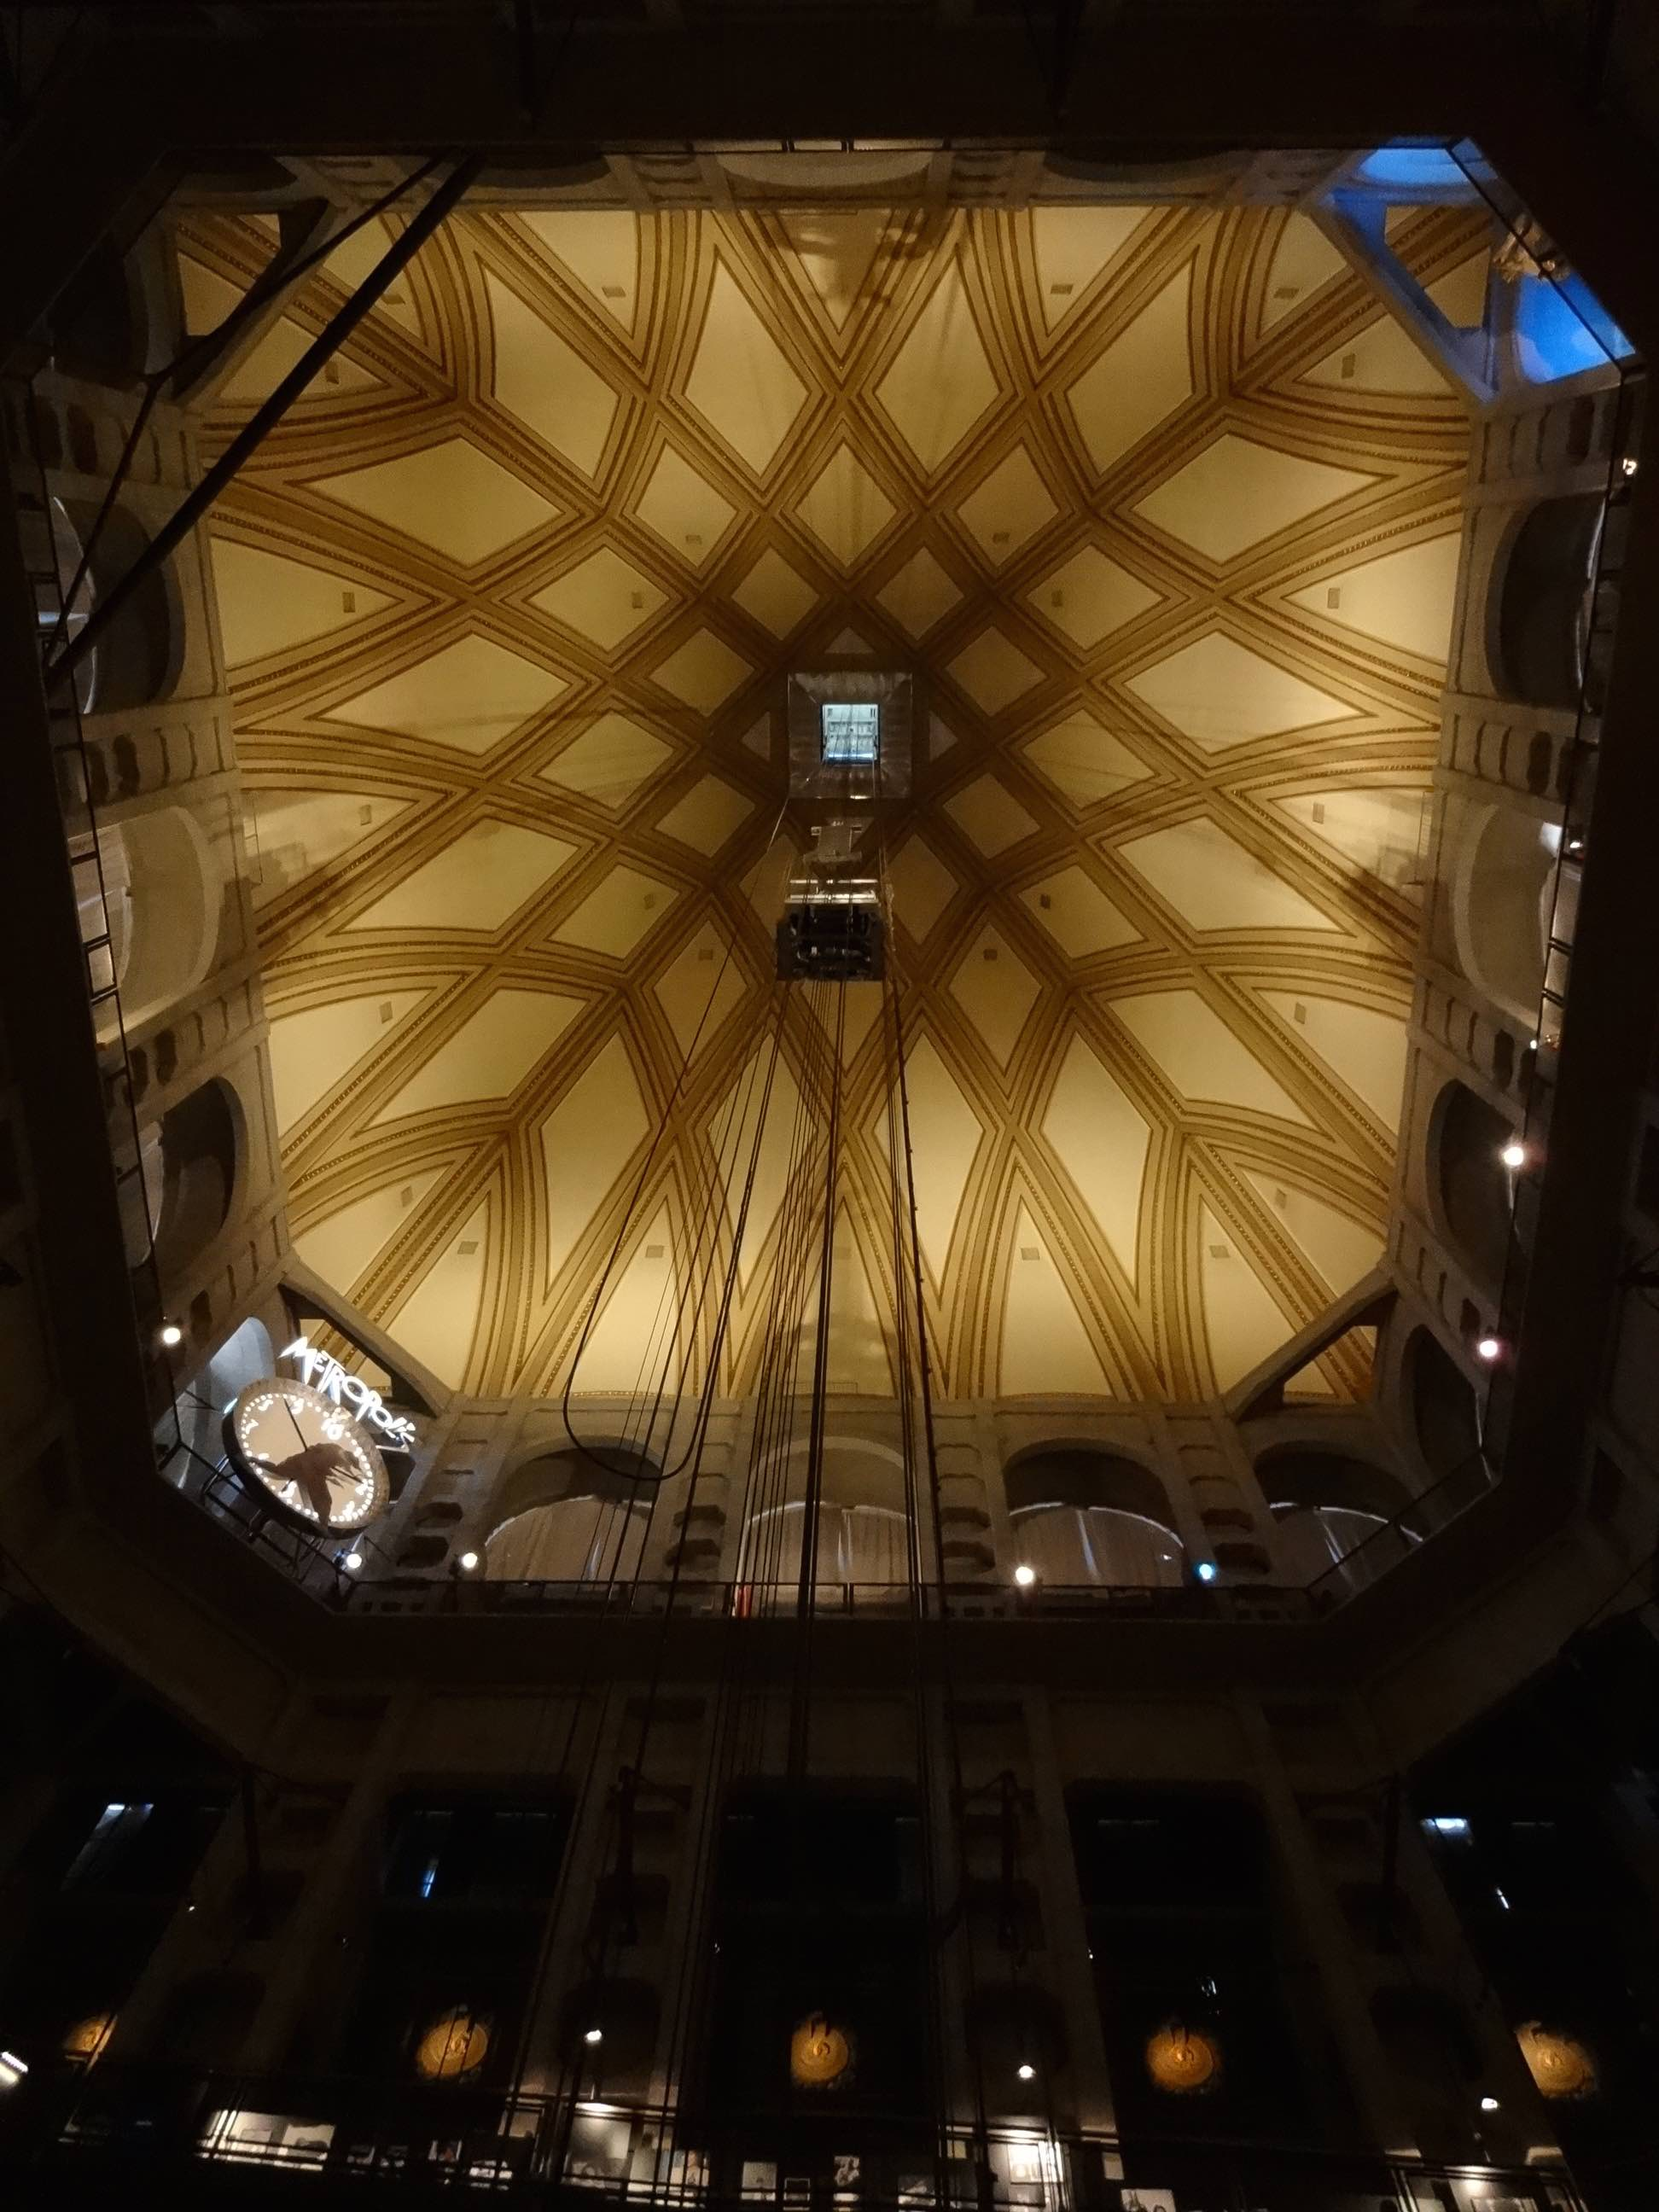 Turin Mole Antonelliana Interior Looking Up At Dome The